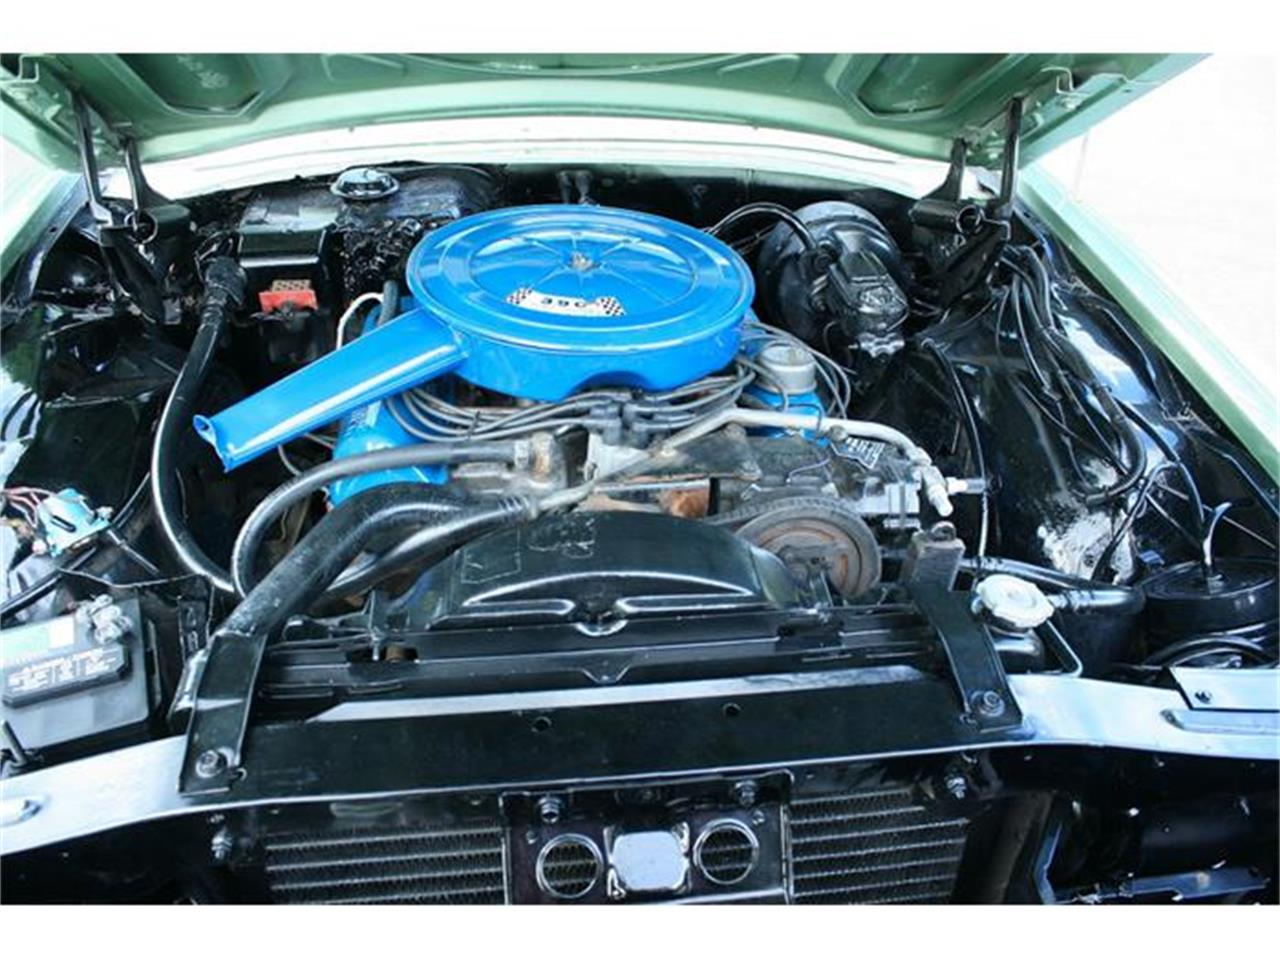 Large Picture of 1967 Ford Thunderbird located in Lakeland Florida - $18,500.00 - ITN1